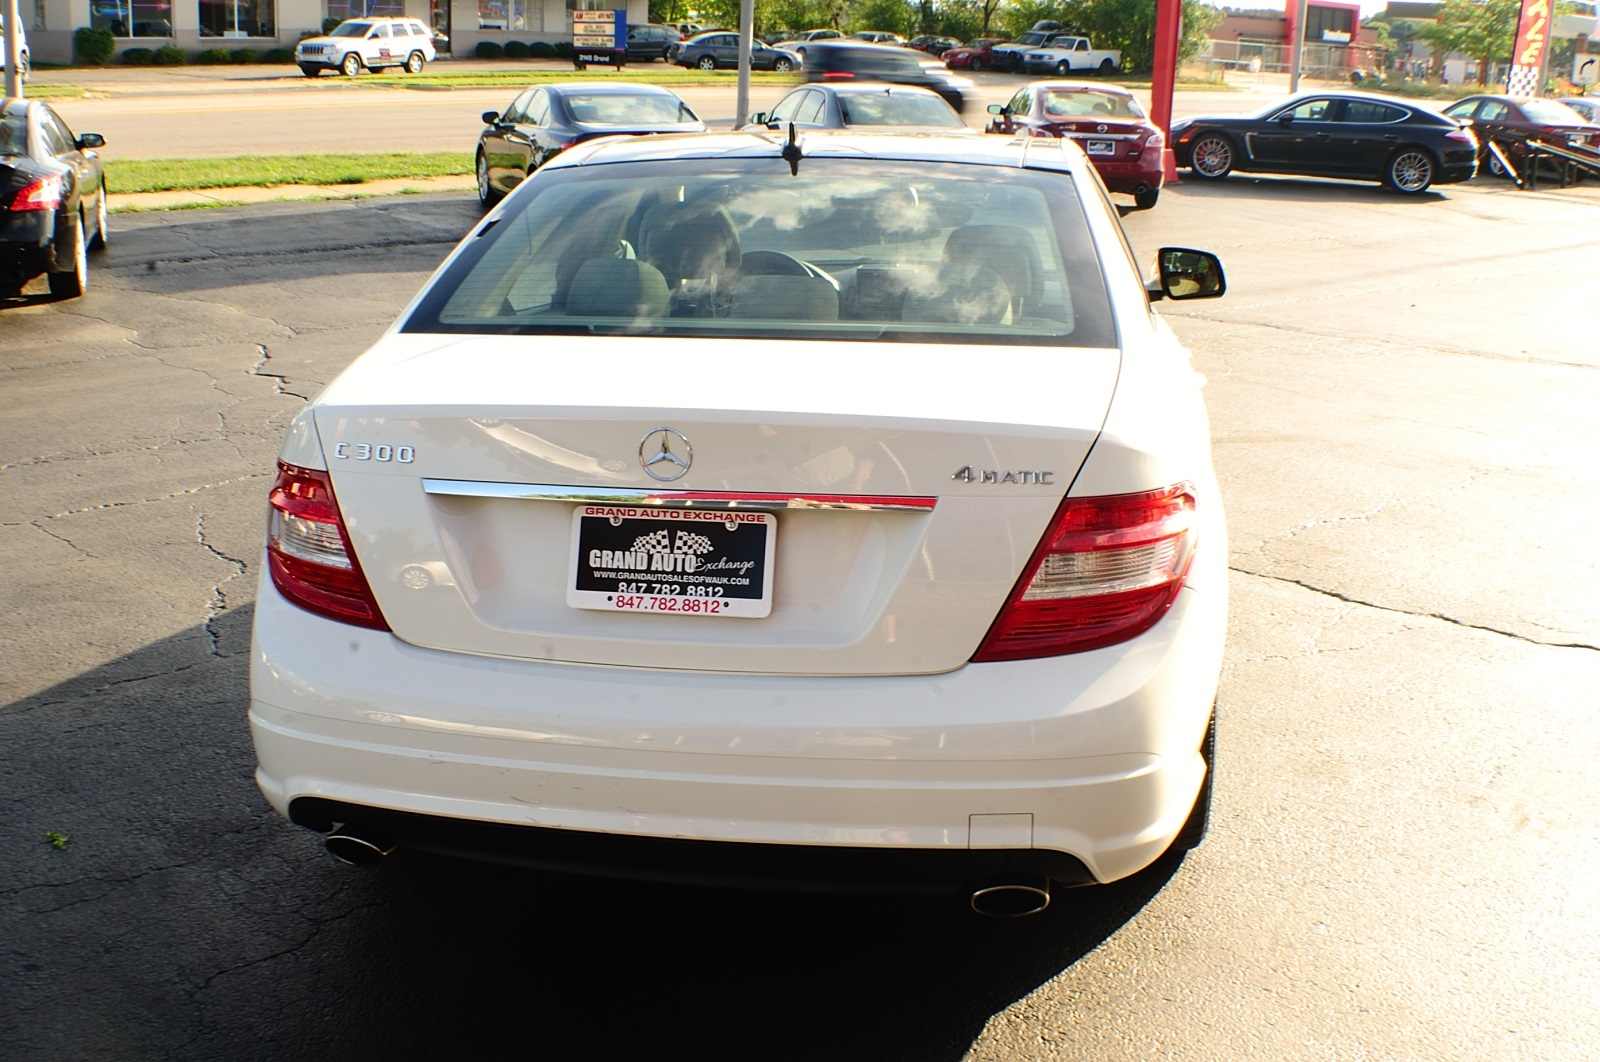 2010 Mercedes Benz C300 4Matic AWD White Sport Sedan sale Buffalo Grove Deerfield Fox Lake